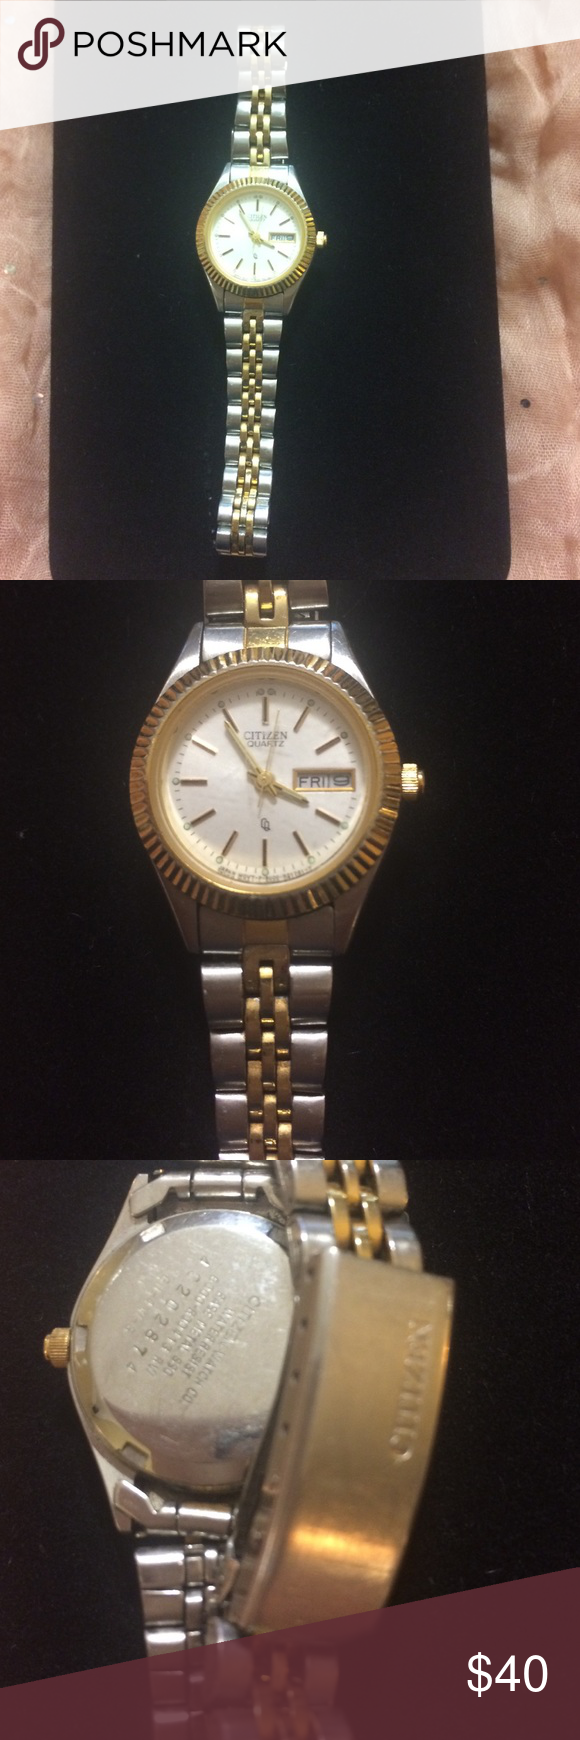 Citizen quartz watch. Stainless steel. Used but still beautiful. Needs new battery. Band will not close so will need to be replaced. Has a few scratches on face of watch. Citizen Accessories Watches